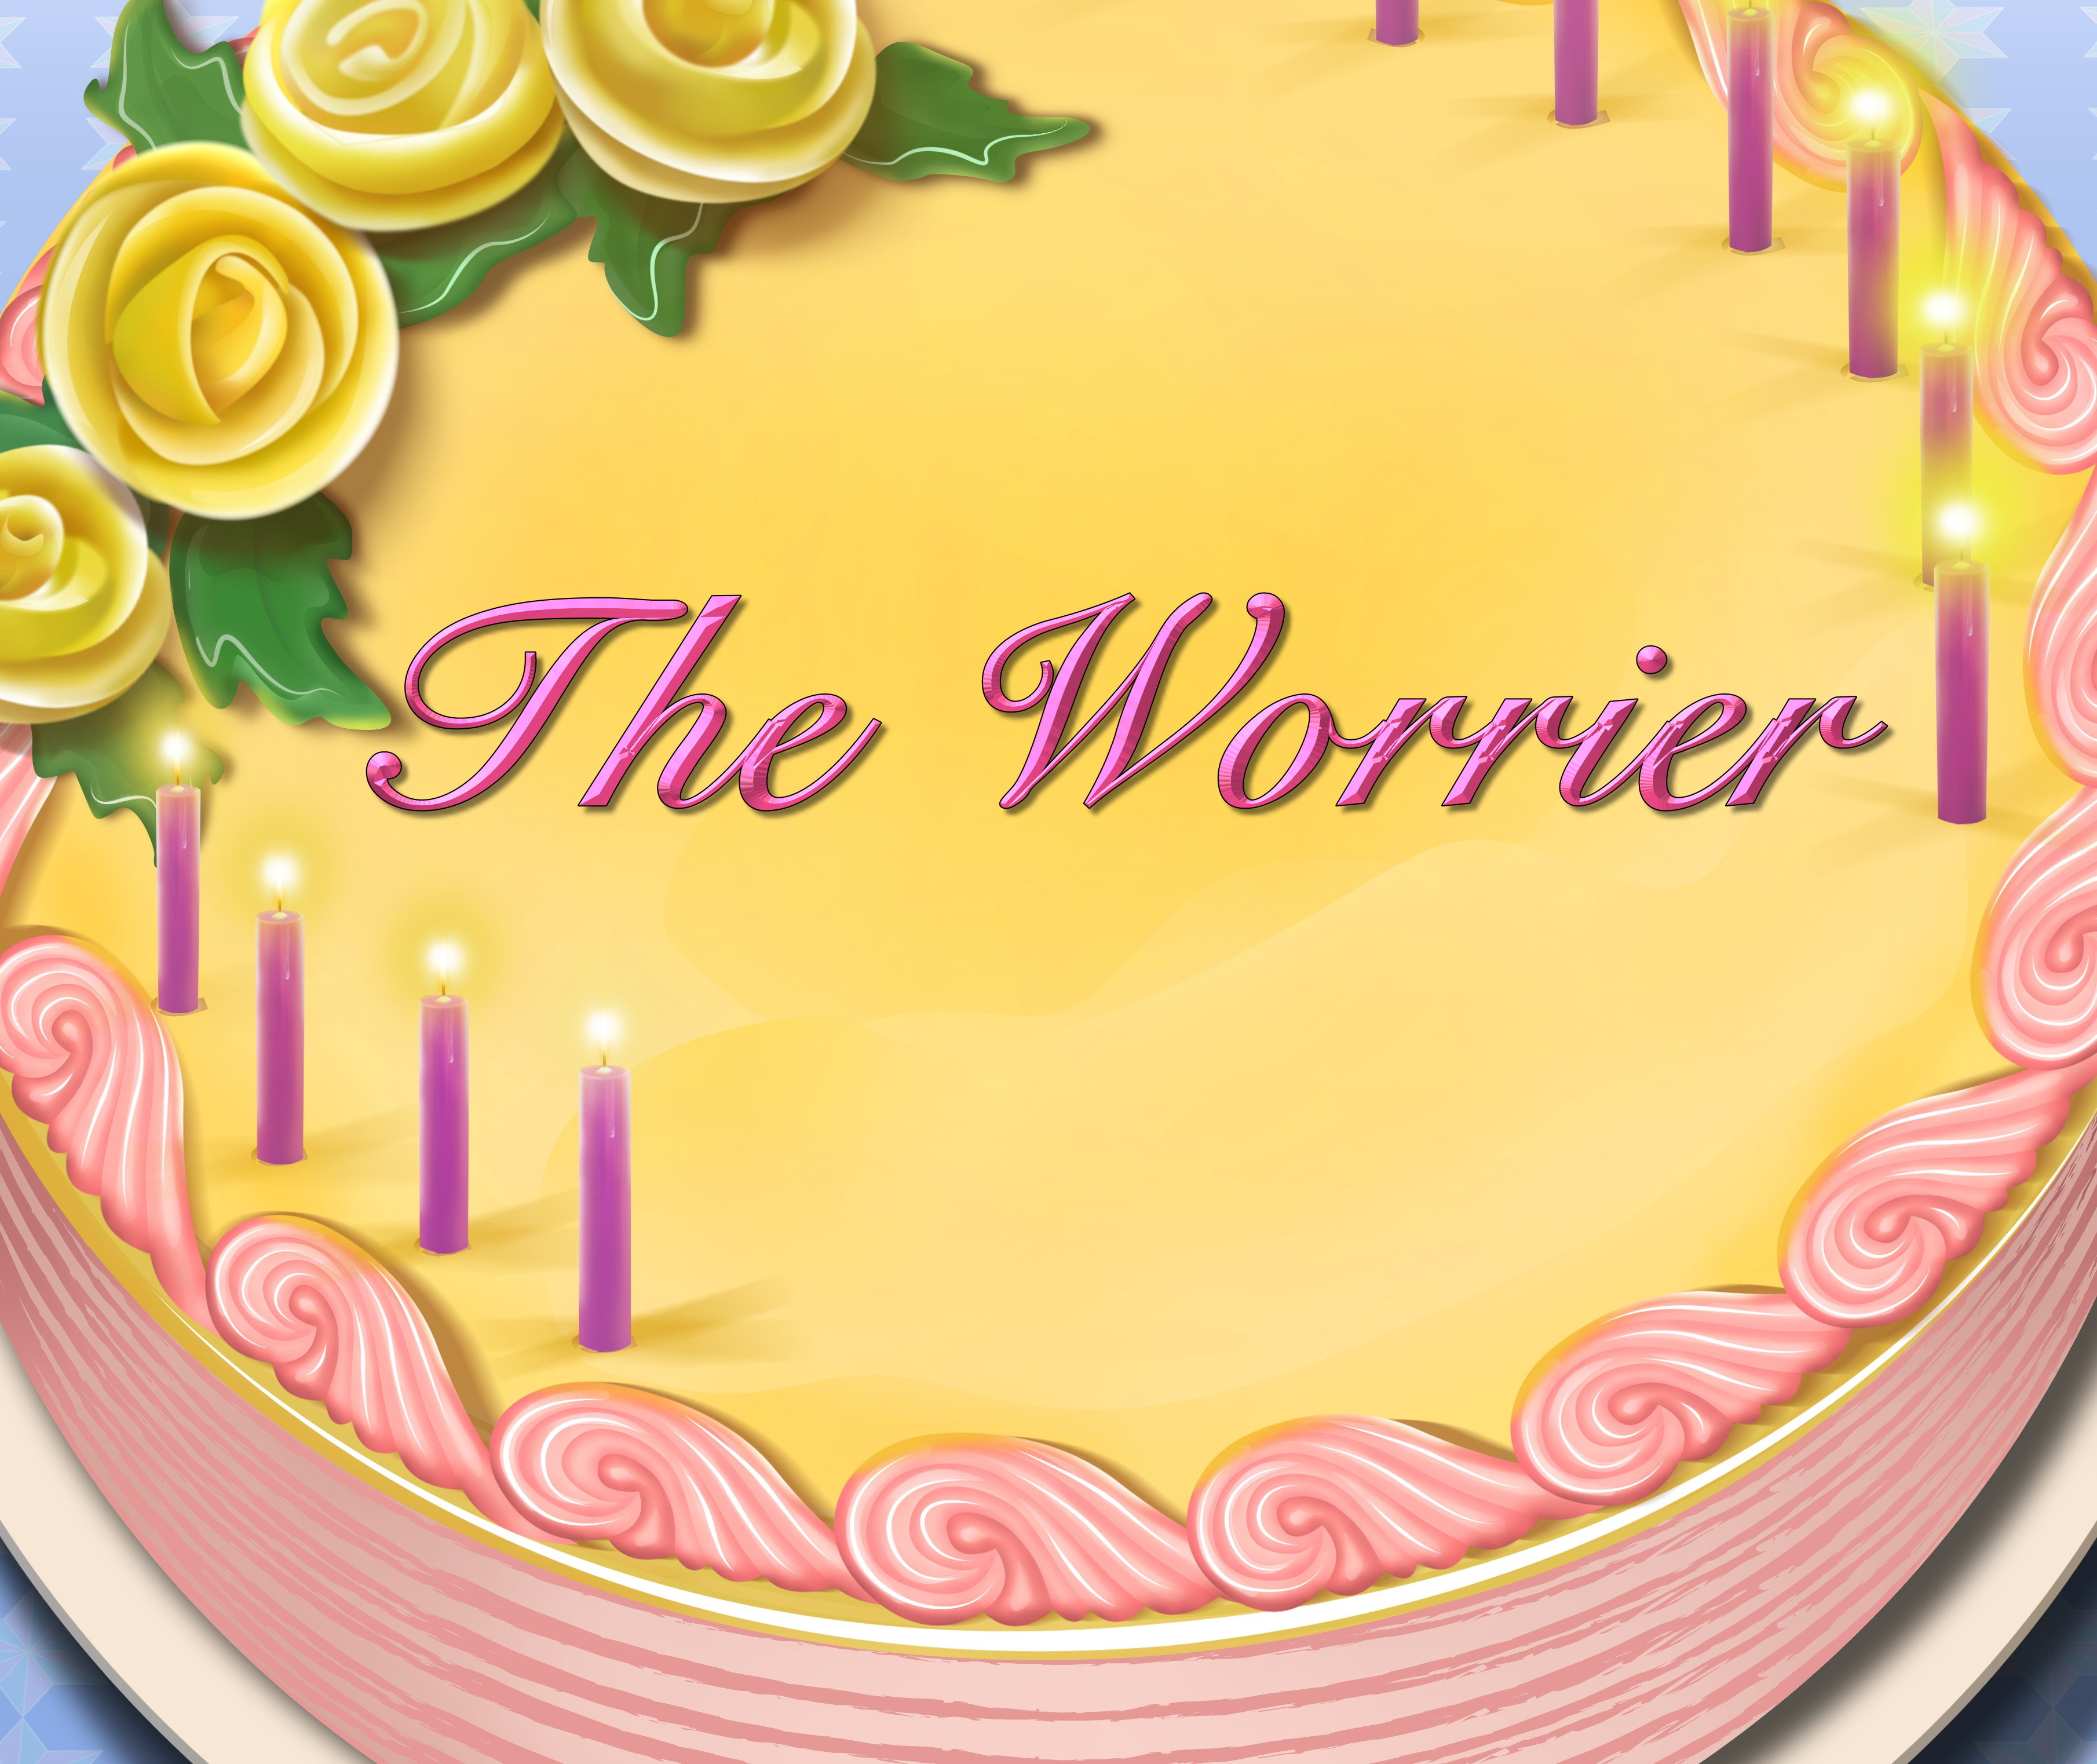 The Worrier Birthday Cake